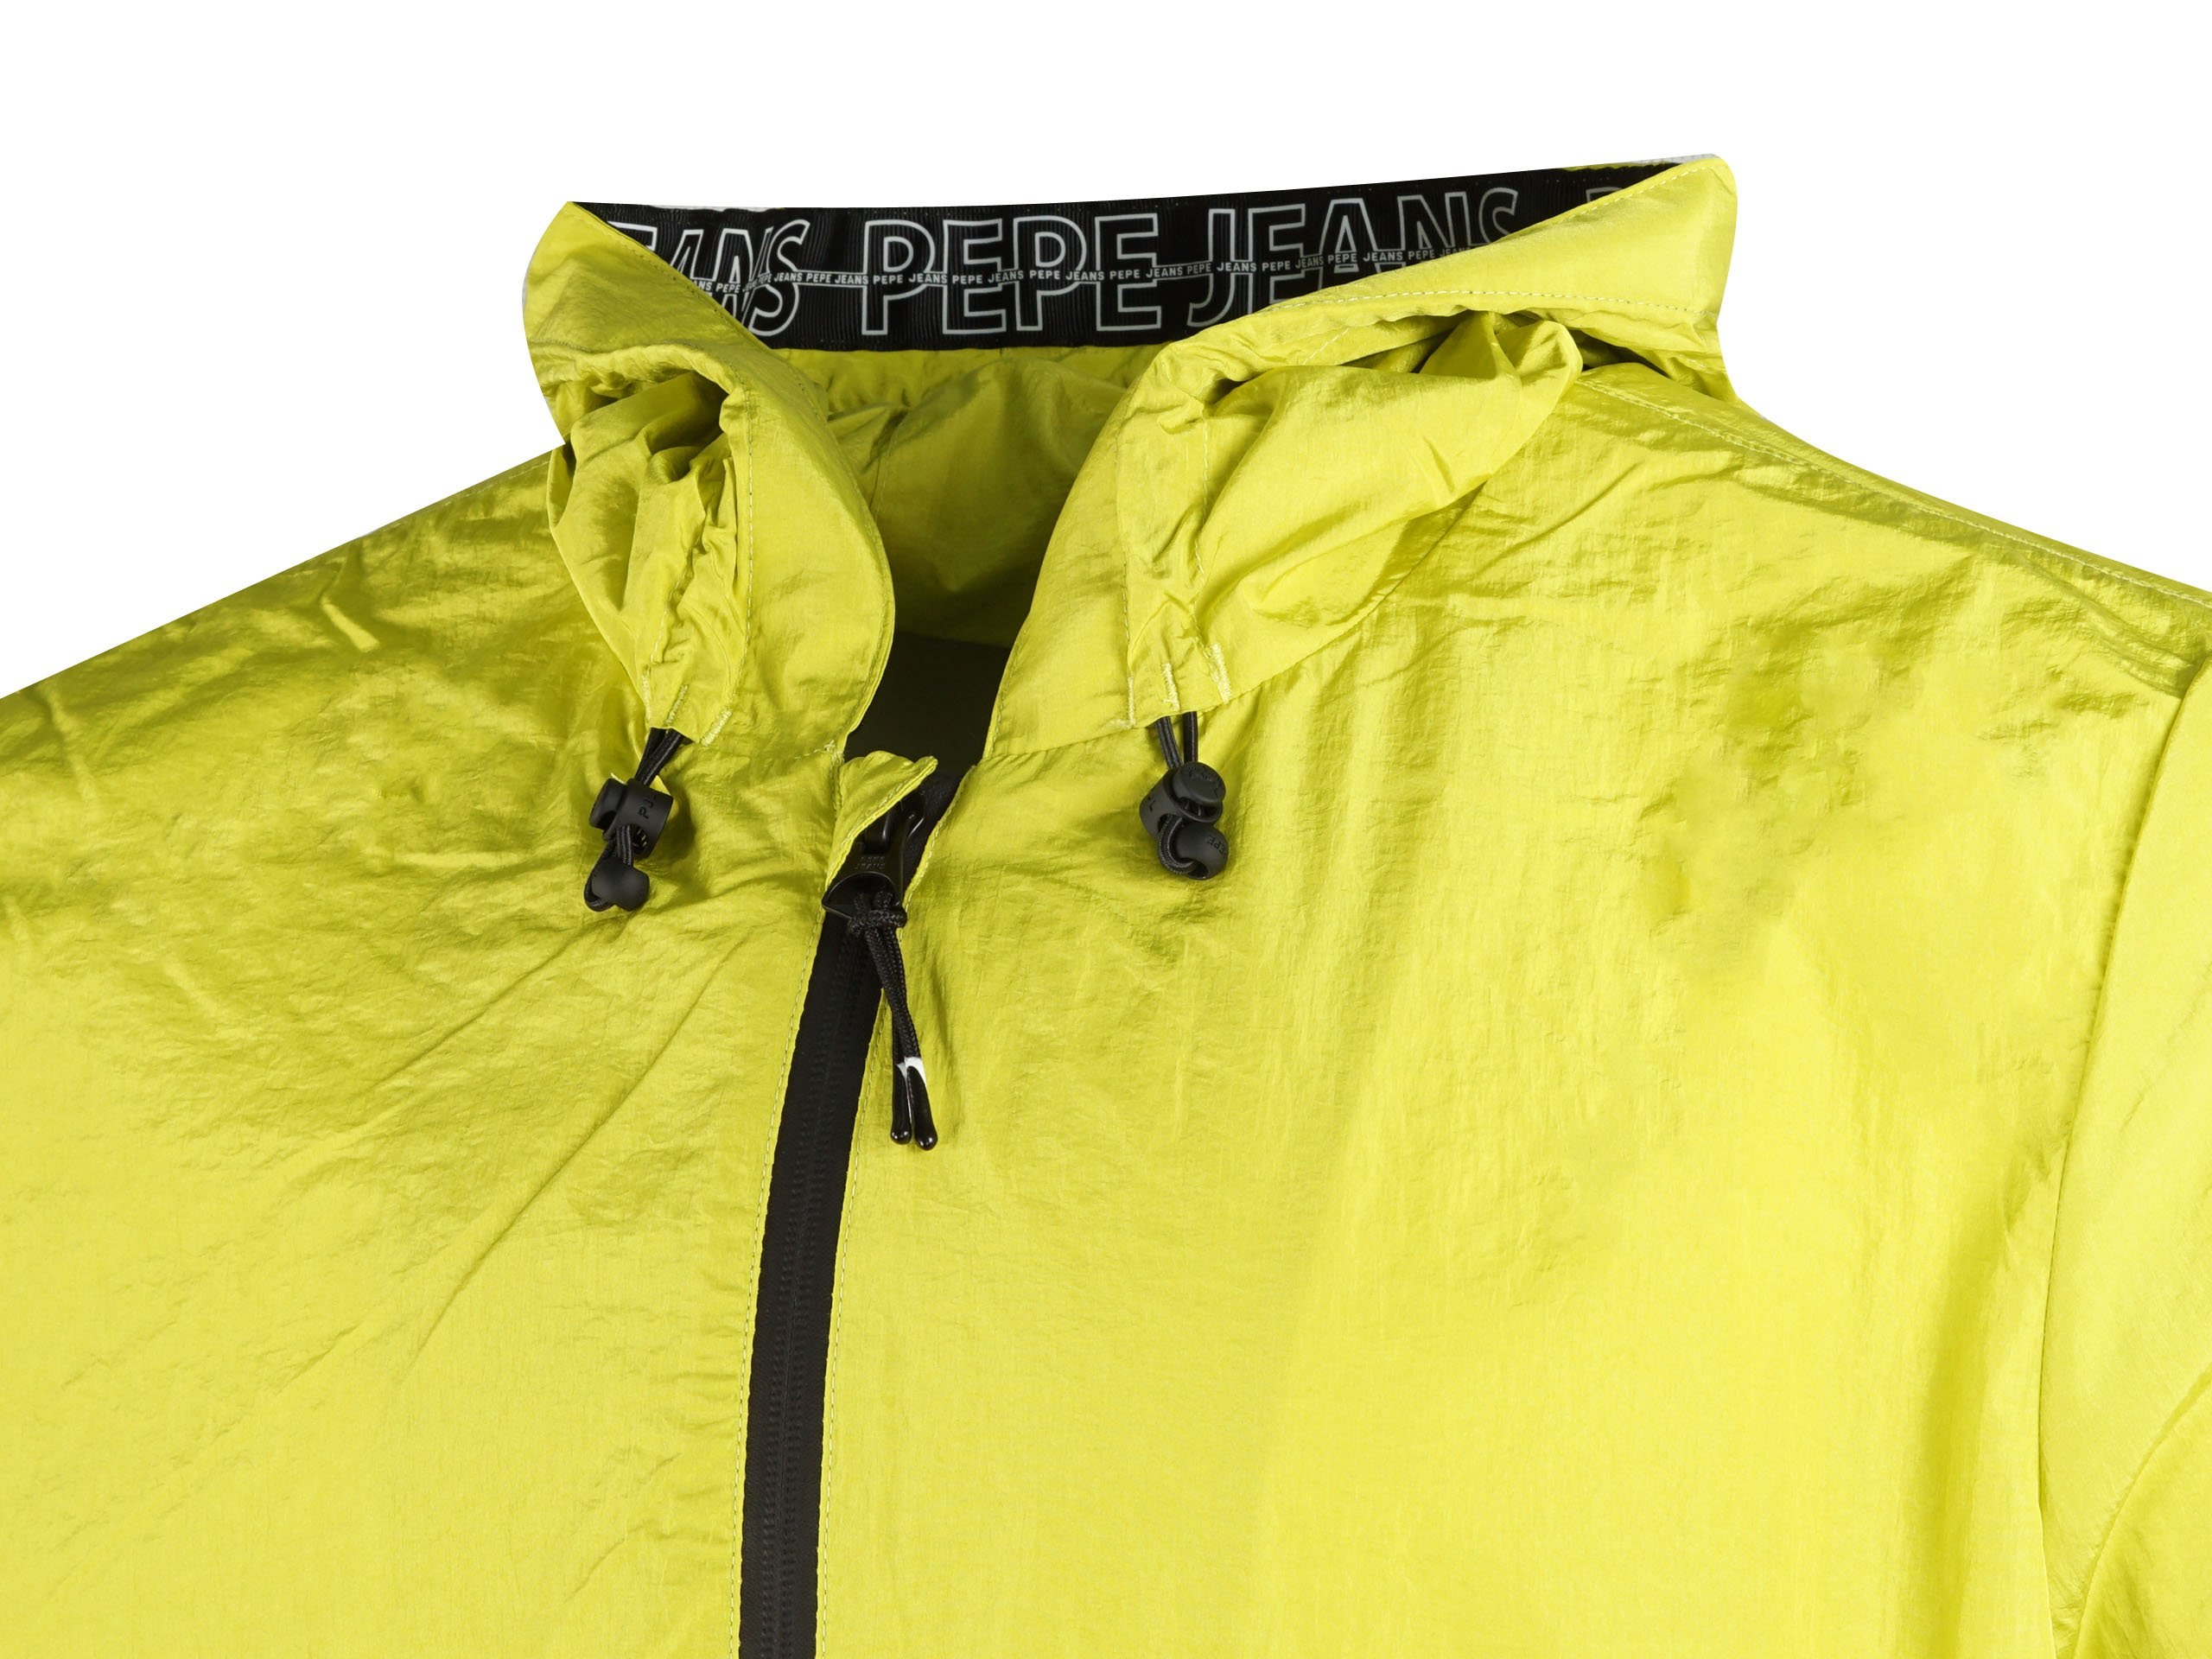 Pepe Jeans London Damascus Pm402054 020 Transition Jacket Lime Limonkowy Mens Pepe Jeans Kicks Sport A Trusted Supplier Of Branded Sports Footwear